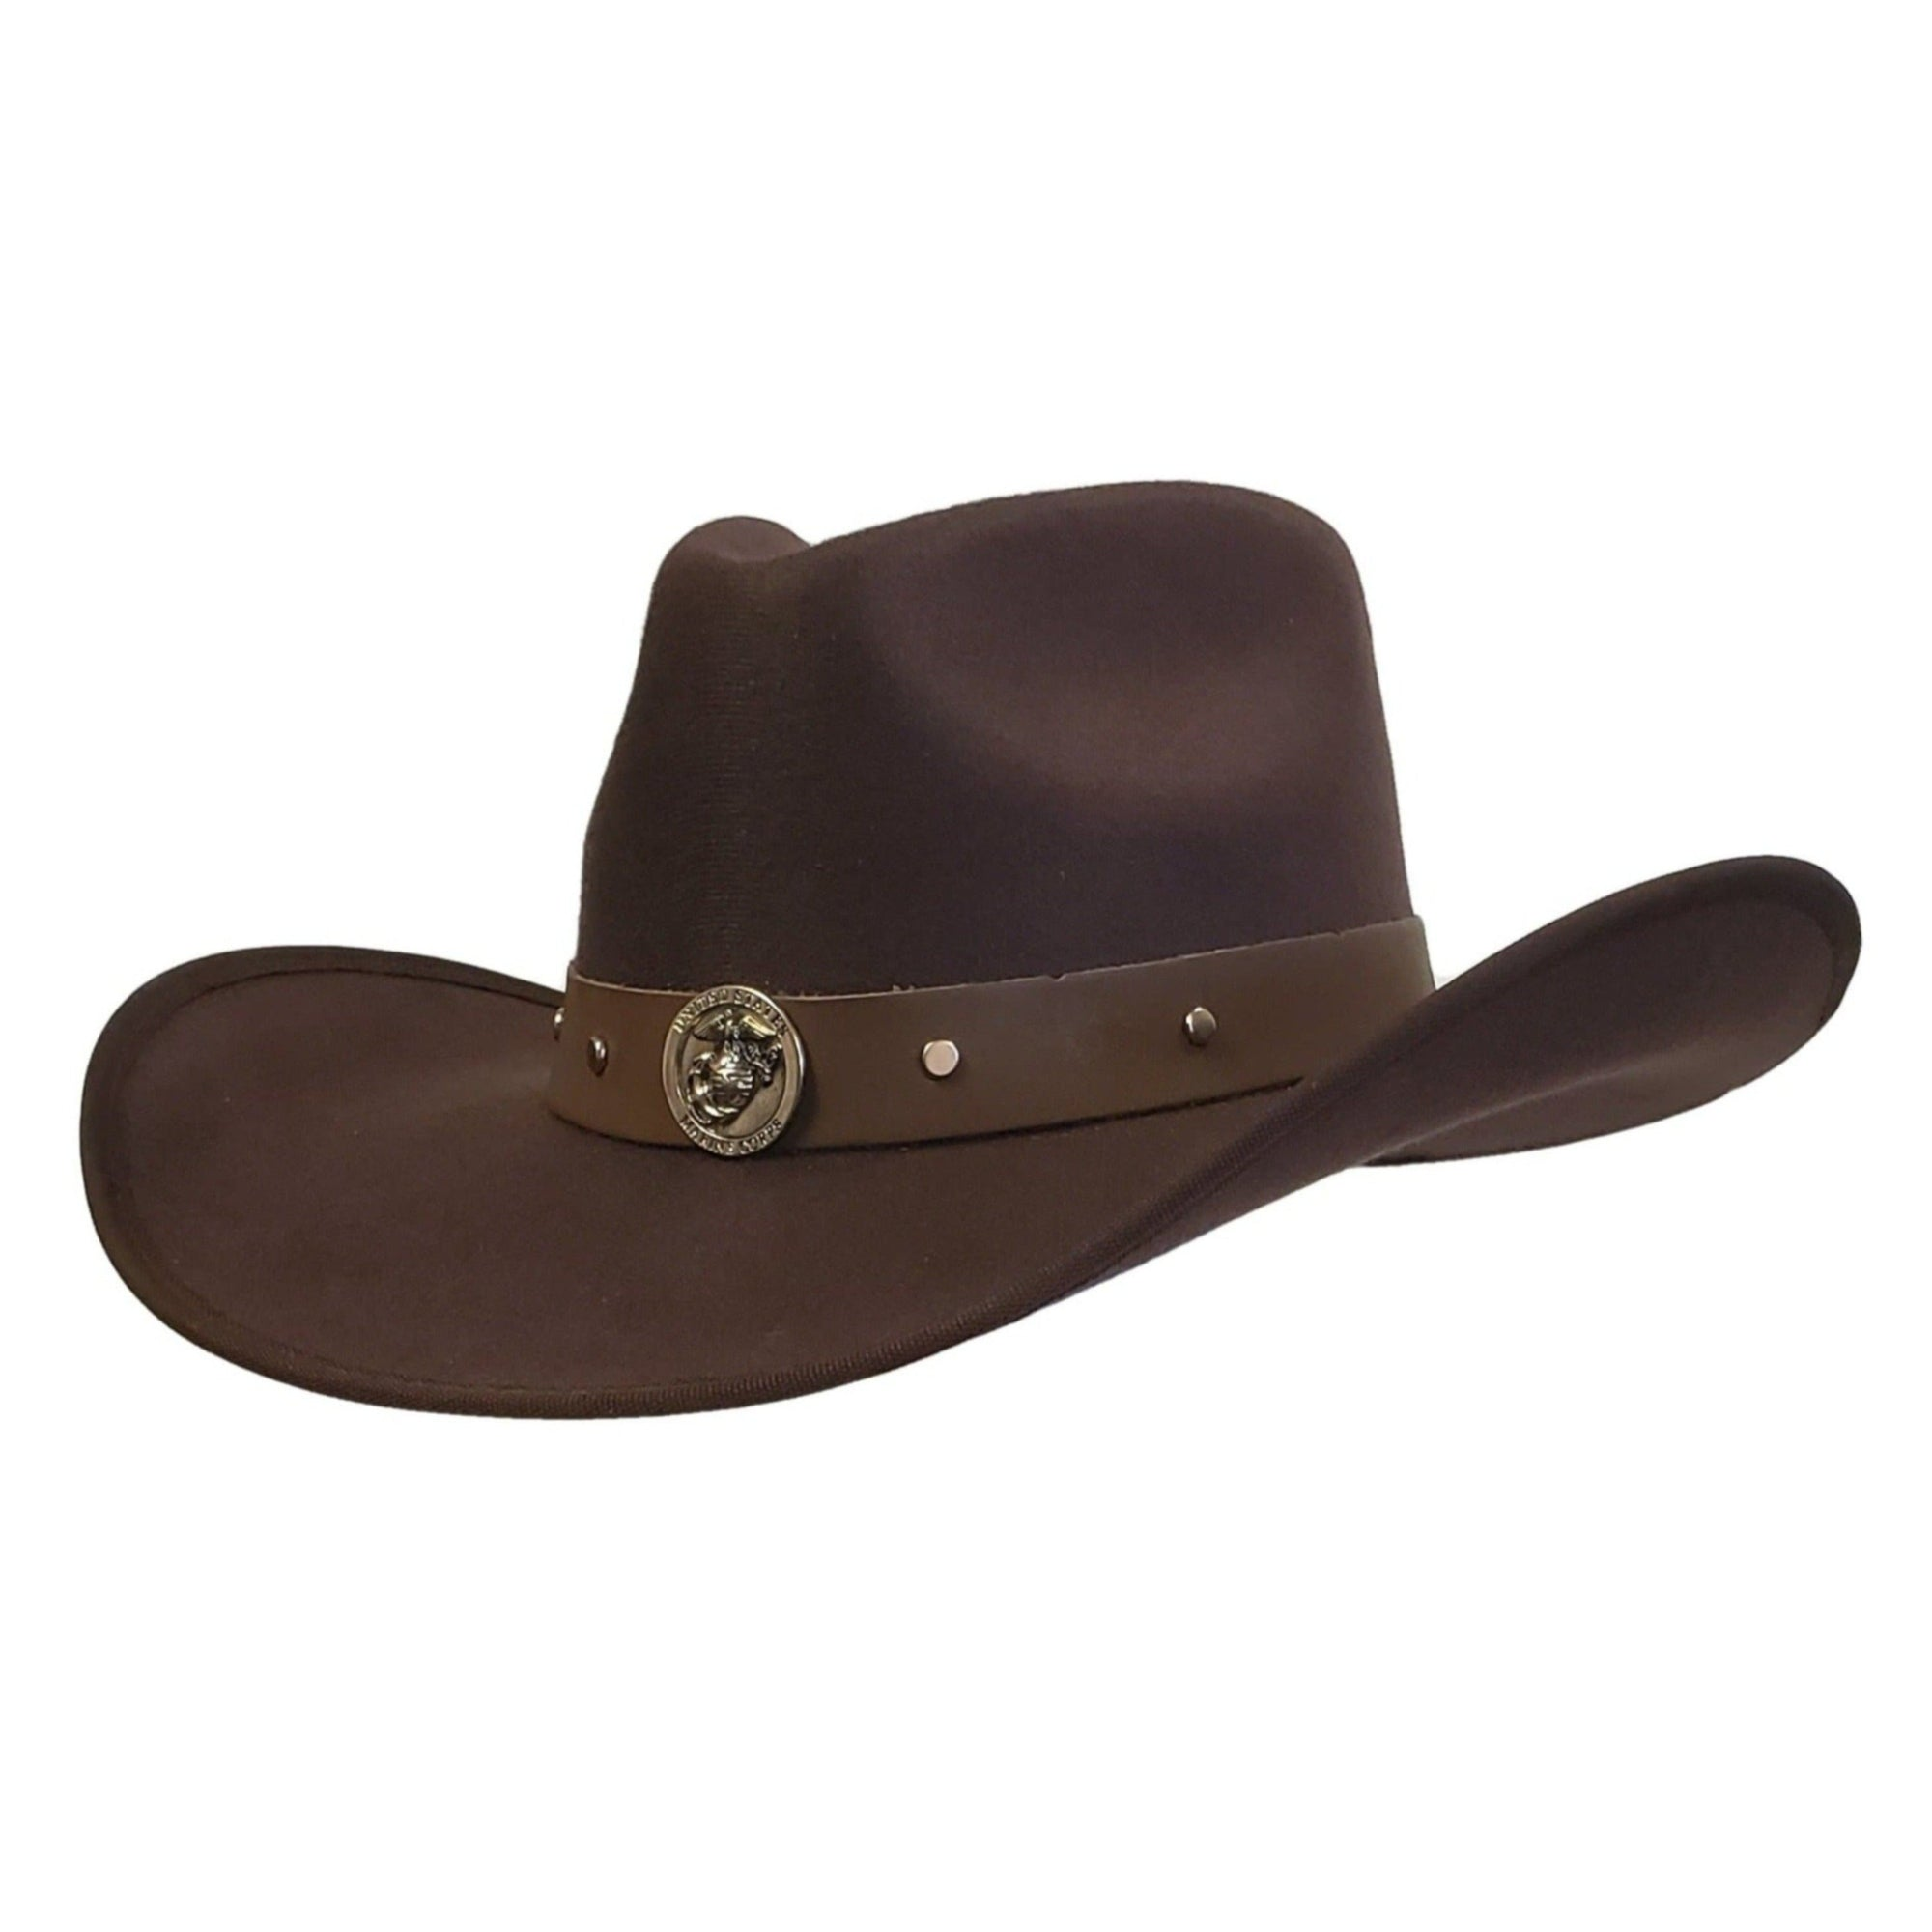 Brown cotton felt cowboy hat with Marines emblem. Cowoby hat from Gone country Hats.